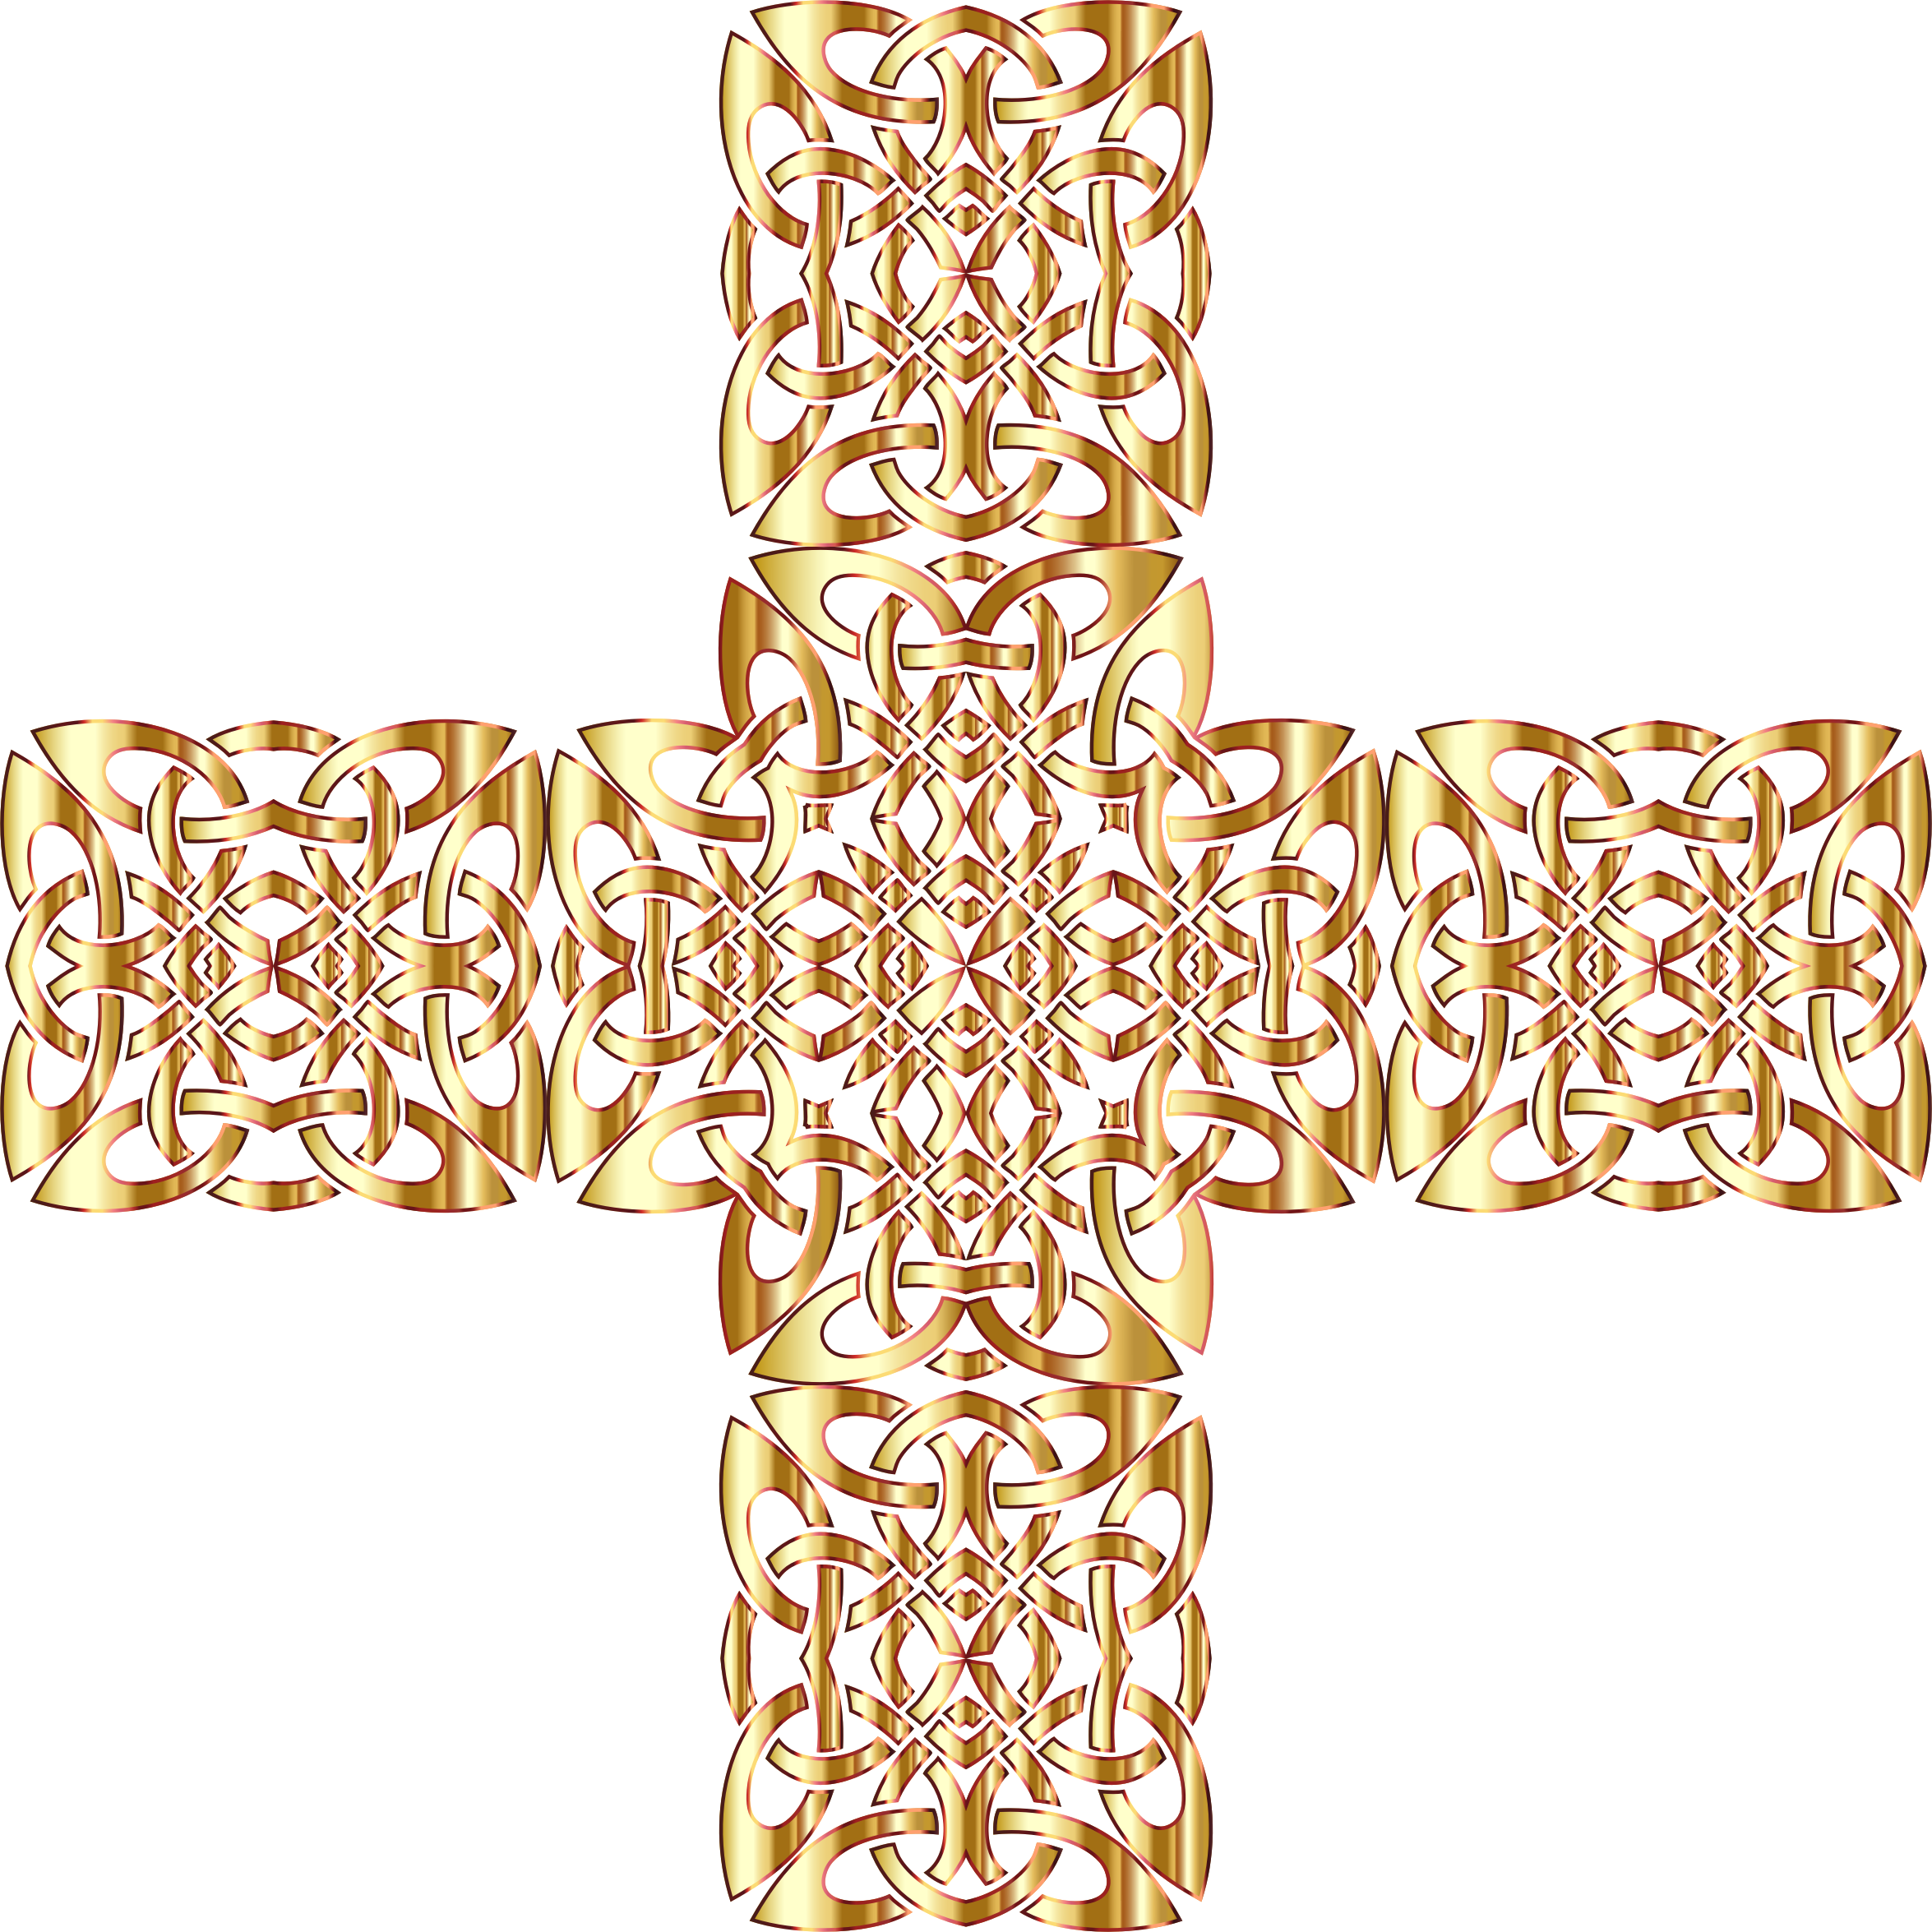 Golden Celtic Knot Cross 3 Without Background by GDJ